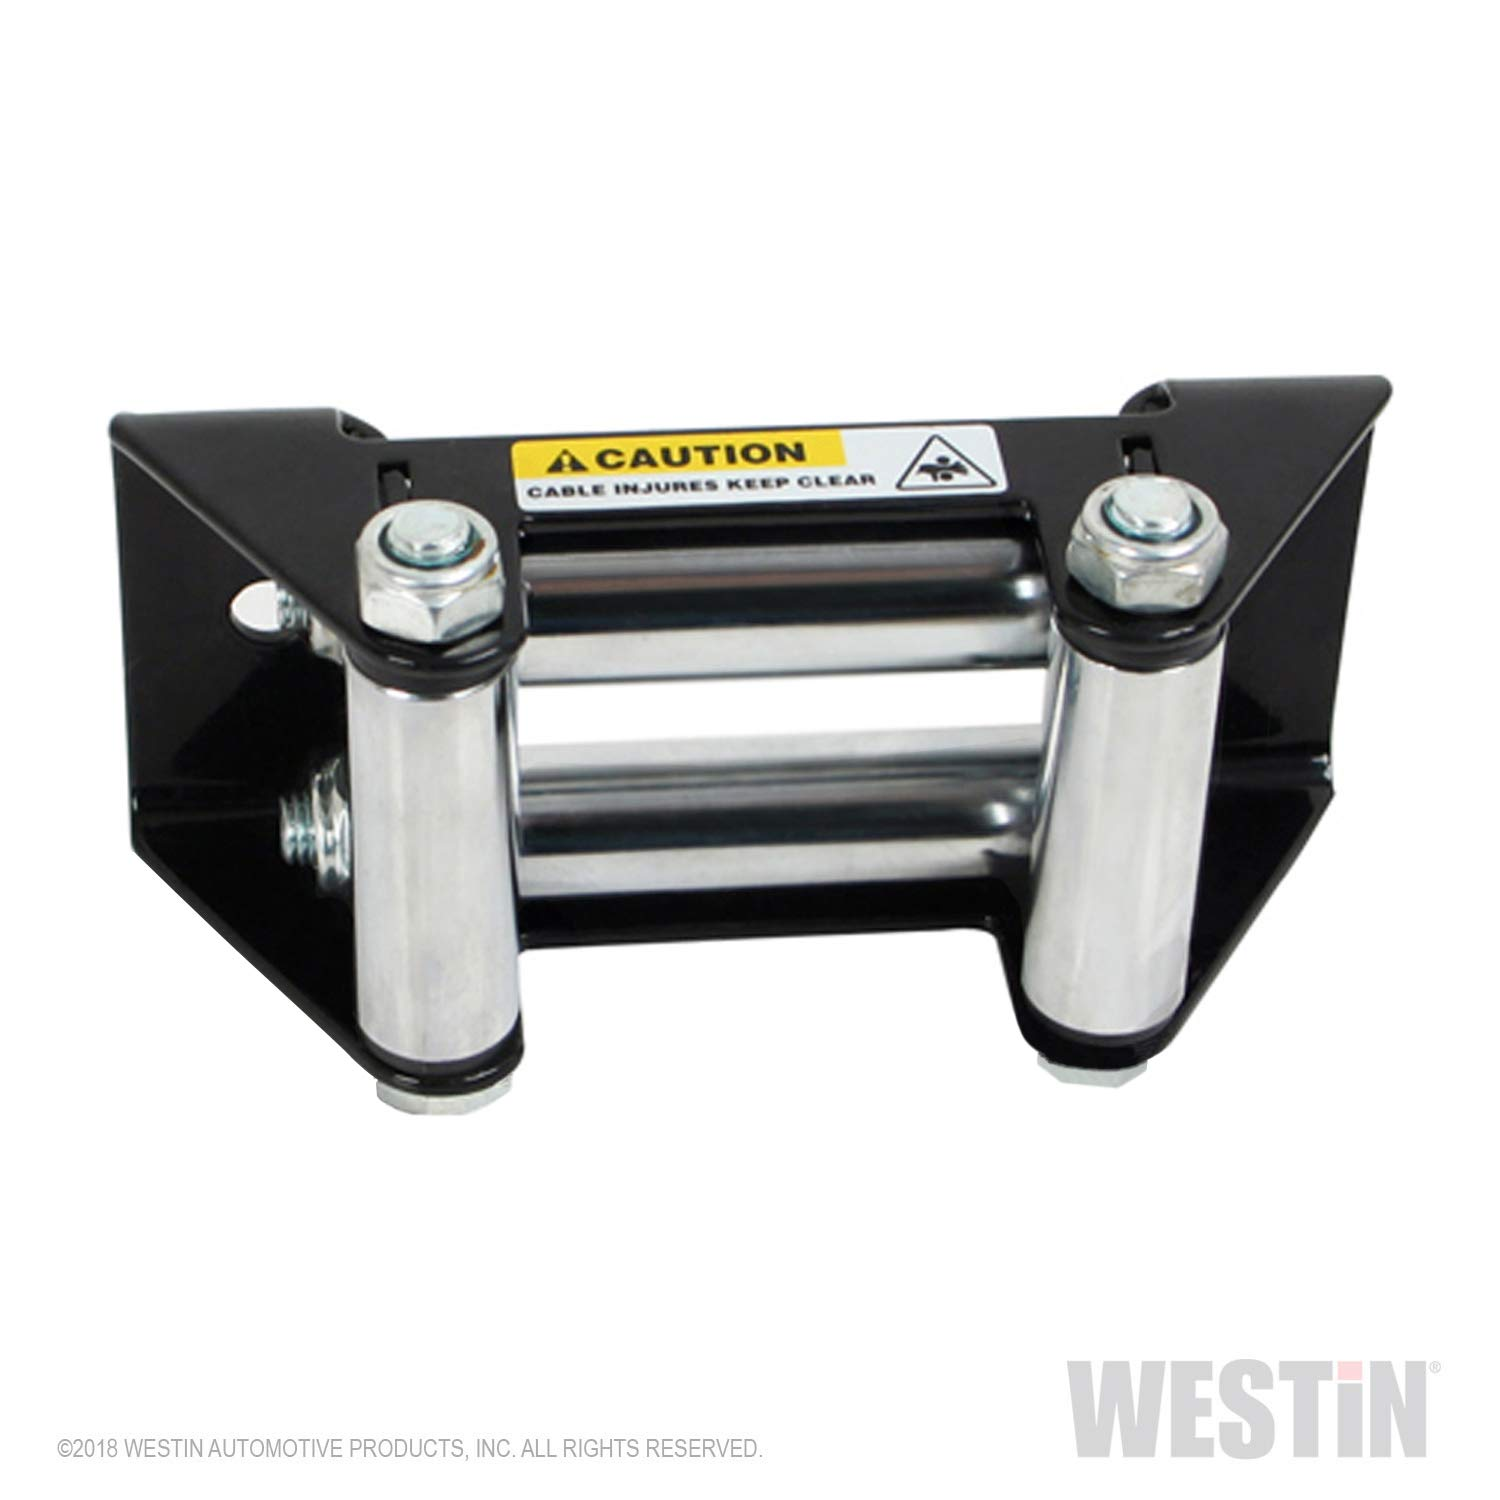 T-MAX 47-3430 ATW Pro Trailer Series 4 Way Roller Fairlead for ATW Pro Trailer Series 4500 /& 6000 Winches